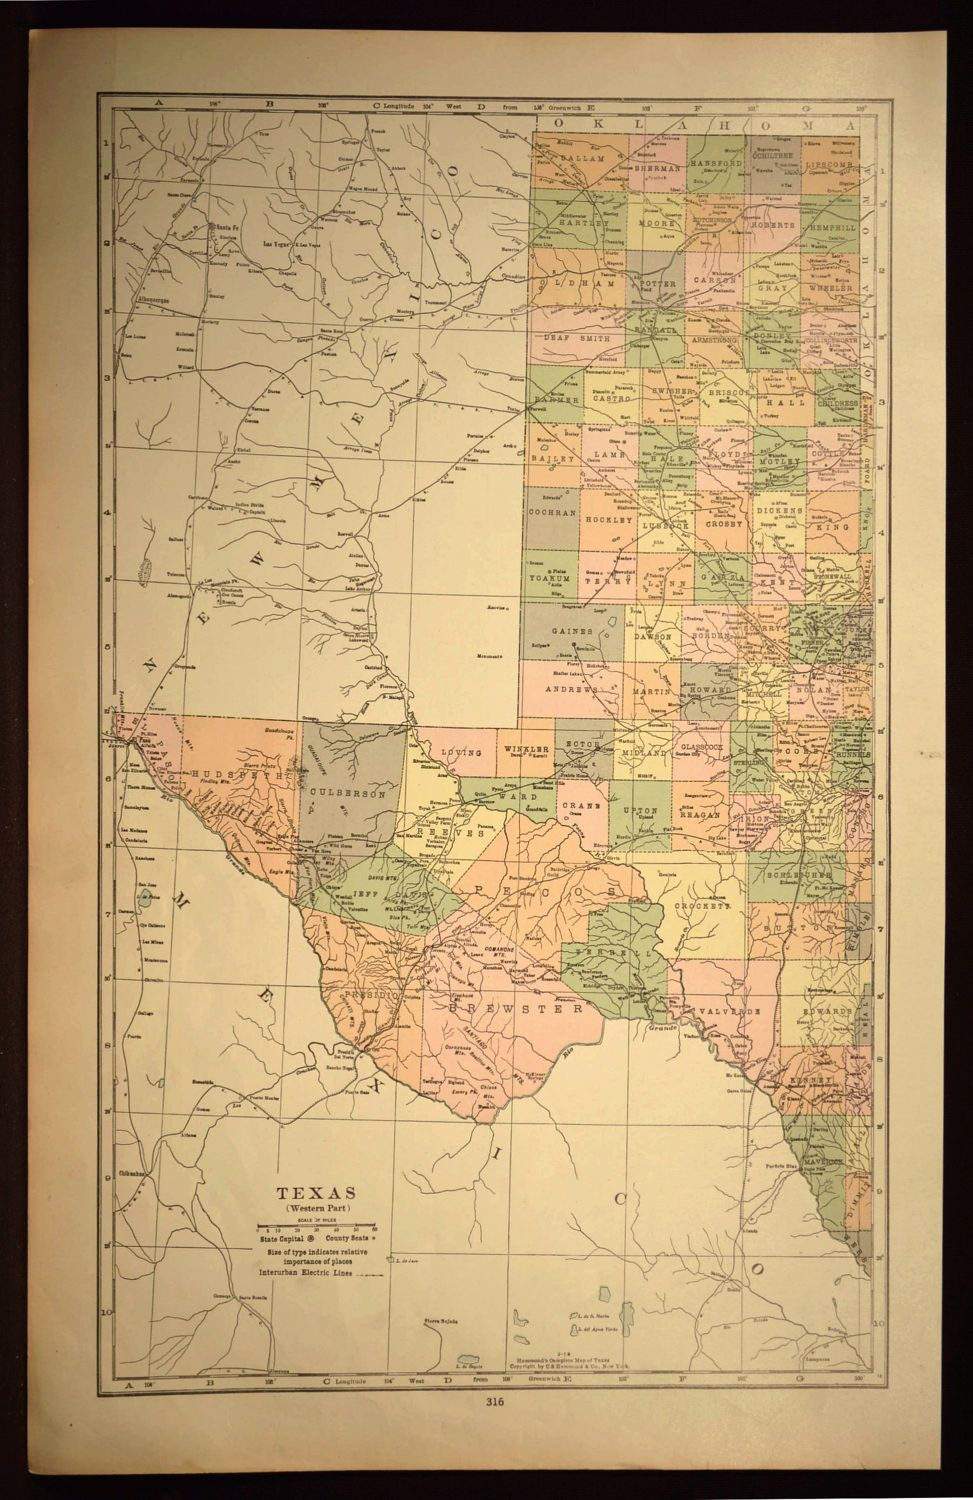 West Texas Map Of Texas Wall Art Decor Large Western Gift Idea Gift - Large Texas Wall Map